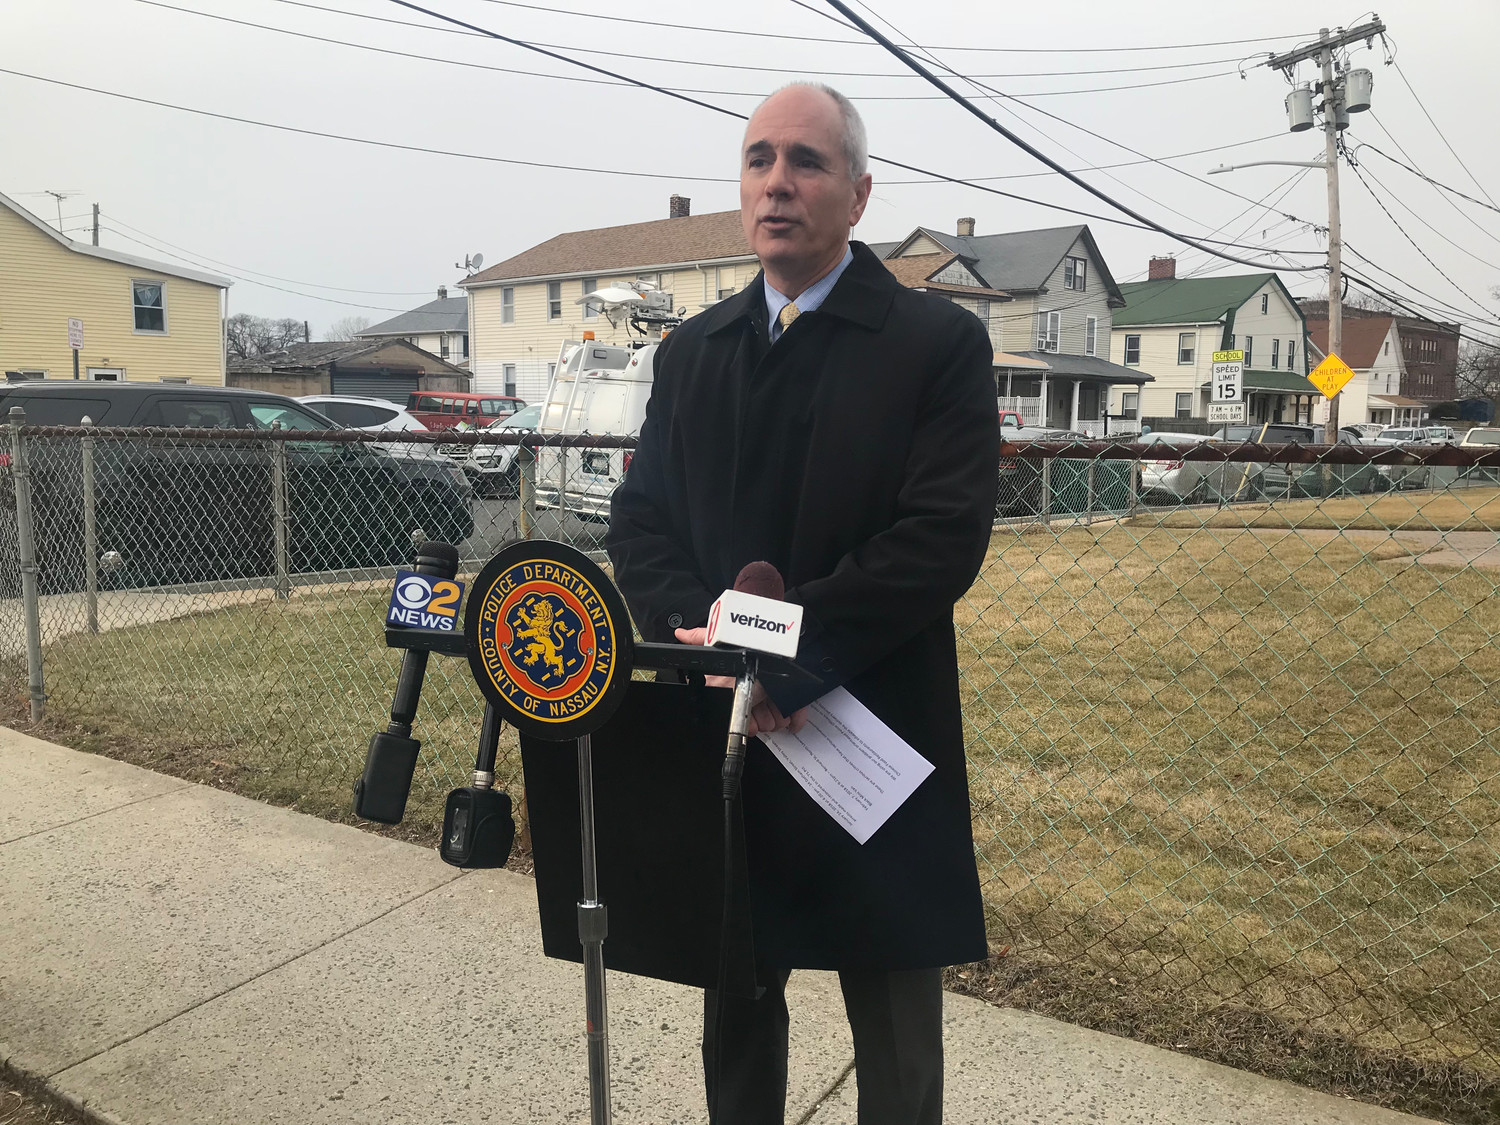 Nassau County police Lt. Richard LeBrun spoke in Inwood on Feb. 9 about the five incidents of bogus food ordering and car thefts.